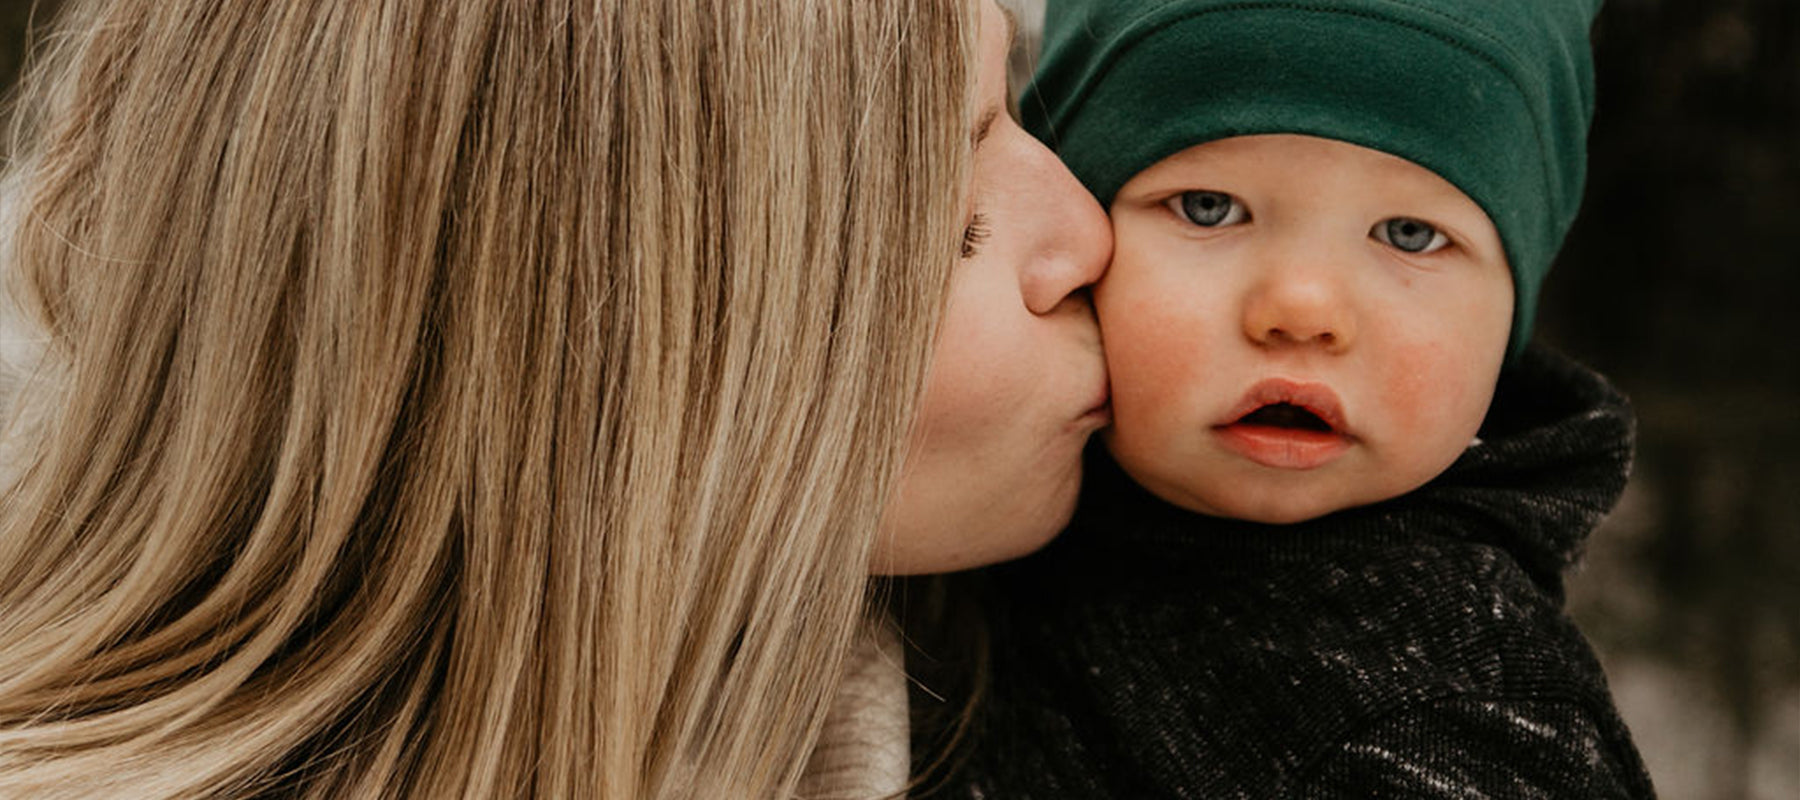 picture of mother kissing baby's cheek.